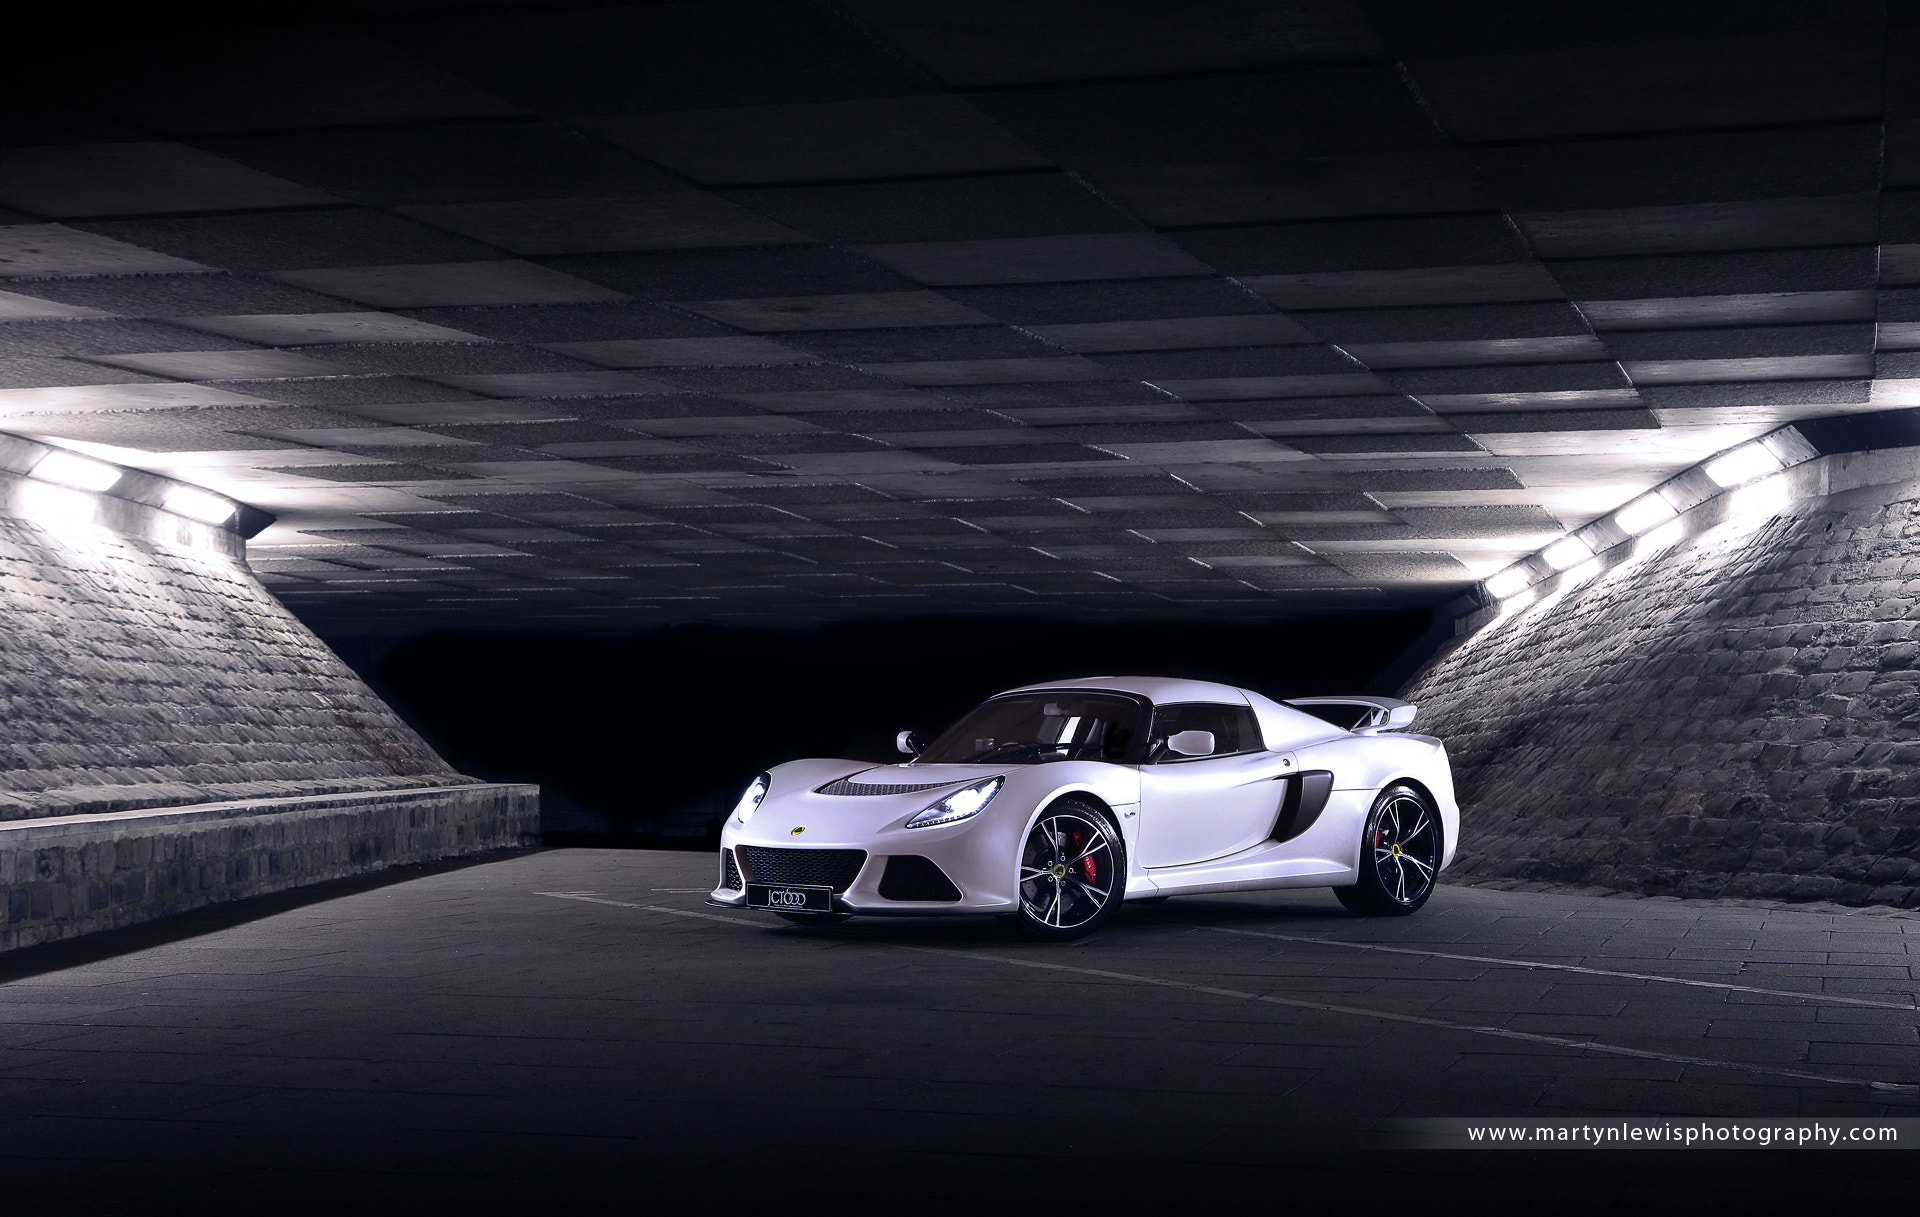 Photograph Exige S V6 by Martyn Lewis on 500px